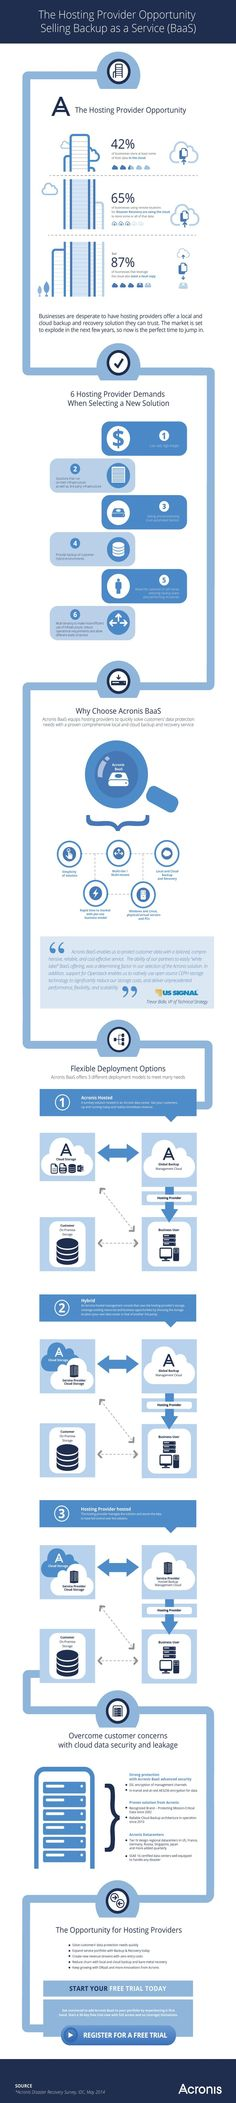 The hosting provider opportunity selling backup as a service #INFOGRAPHIC #CLOUD